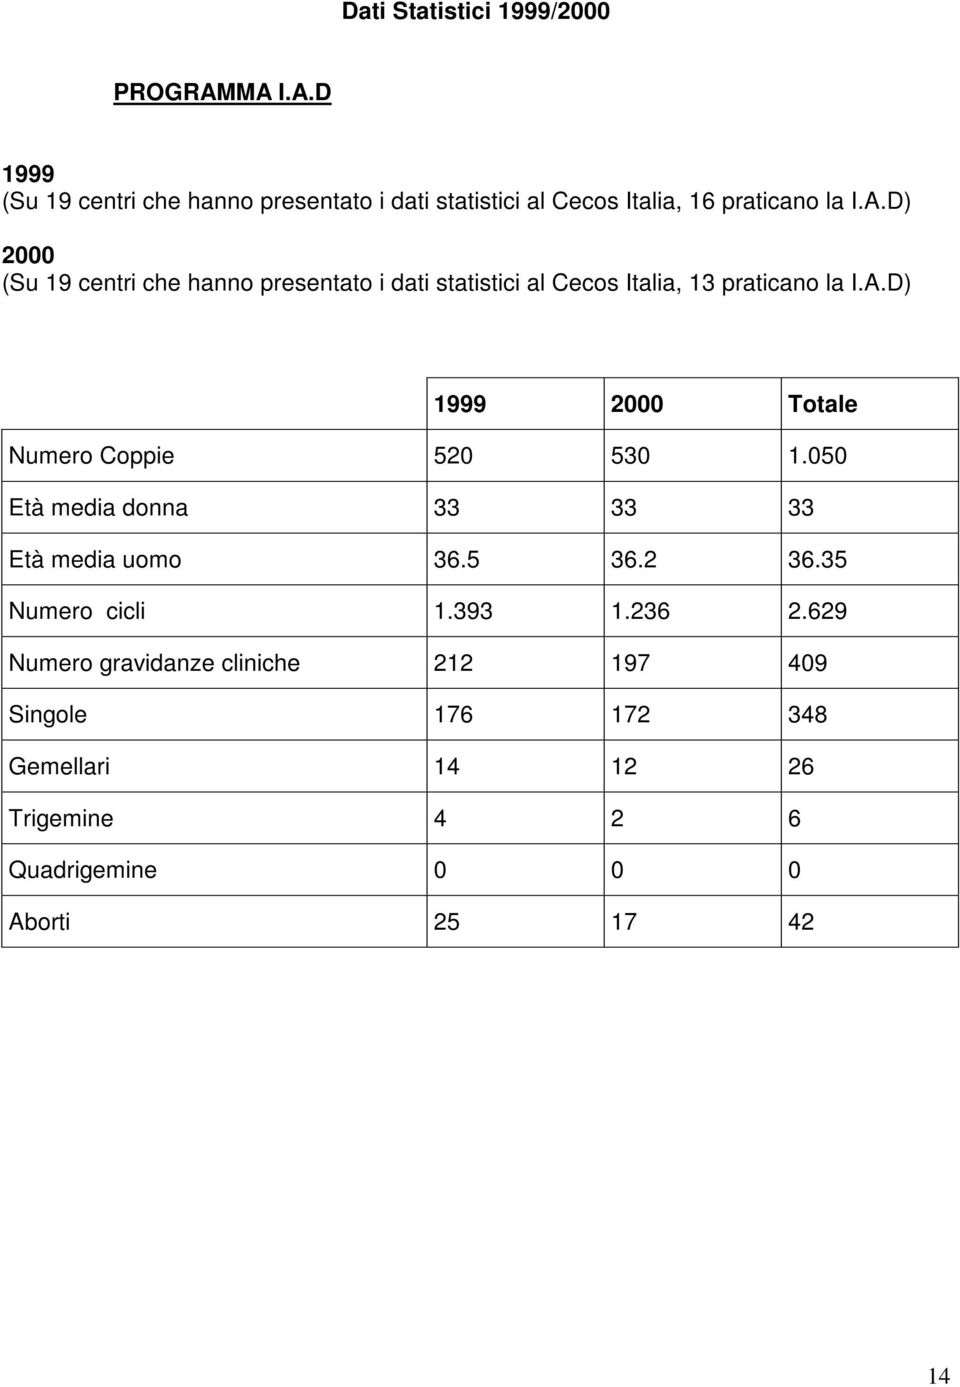 A.D) 1999 2000 Totale Numero Coppie 520 530 1.050 Età media donna 33 33 33 Età media uomo 36.5 36.2 36.35 Numero cicli 1.